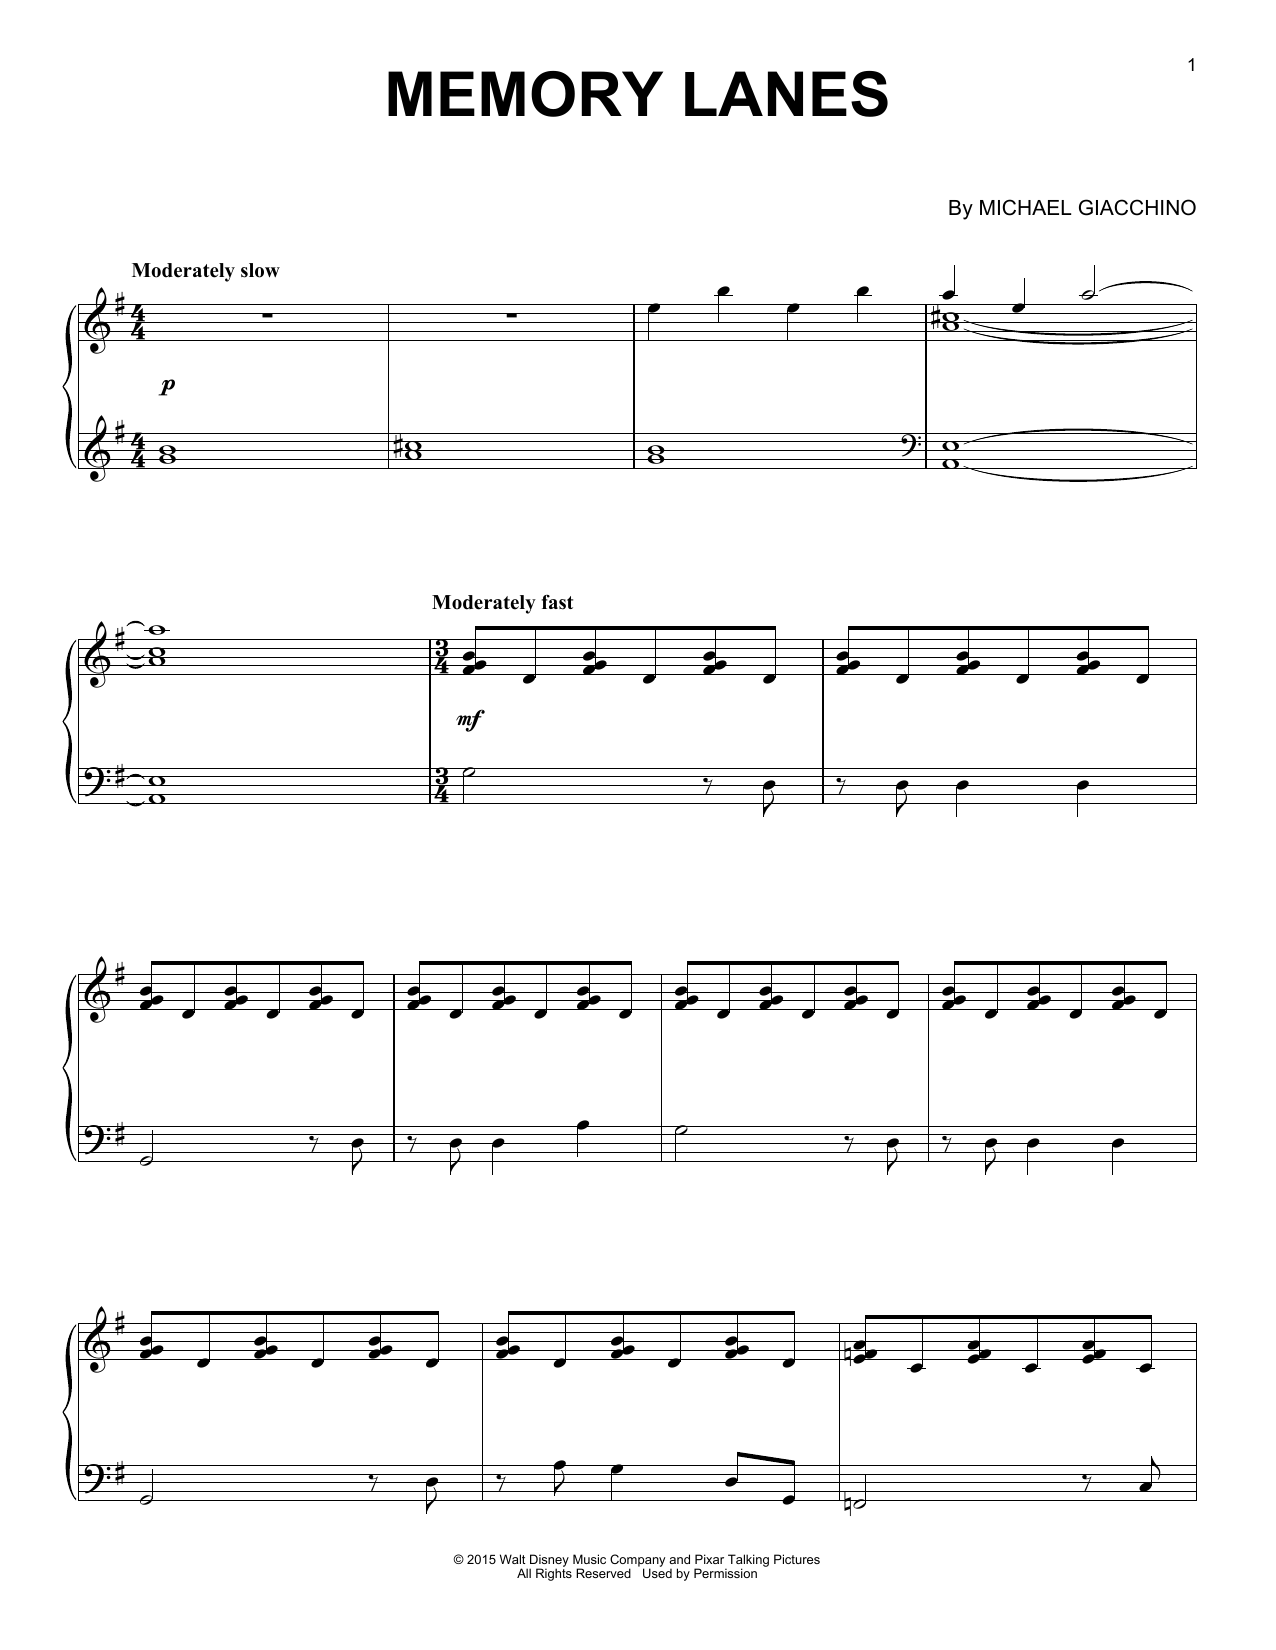 Download Michael Giacchino 'Memory Lanes' Digital Sheet Music Notes & Chords and start playing in minutes